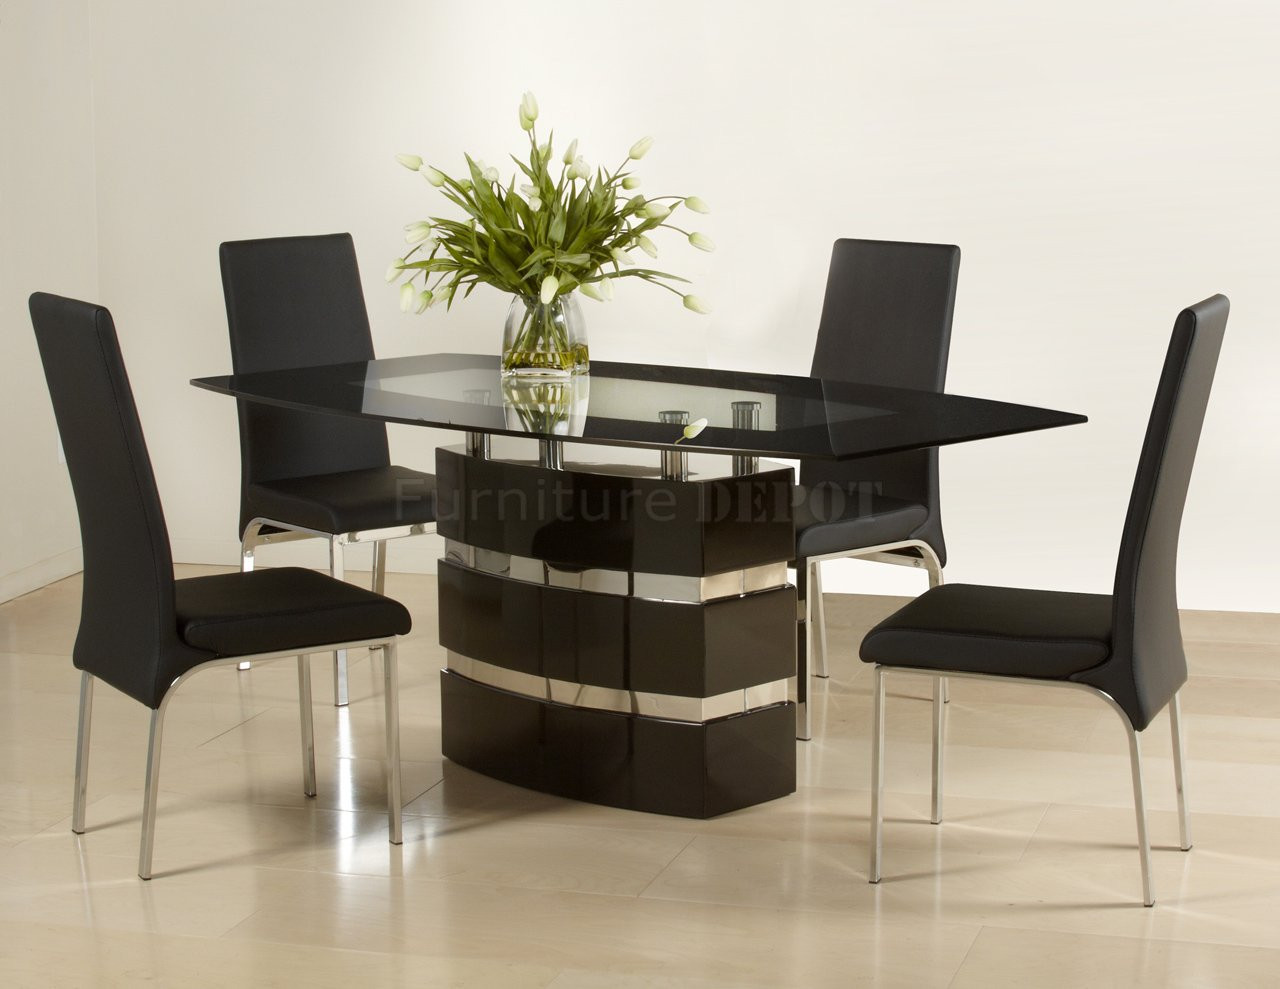 Best ideas about Modern Dining Table Set . Save or Pin How to Choose Modern Dining Chairs for Your Home Now.